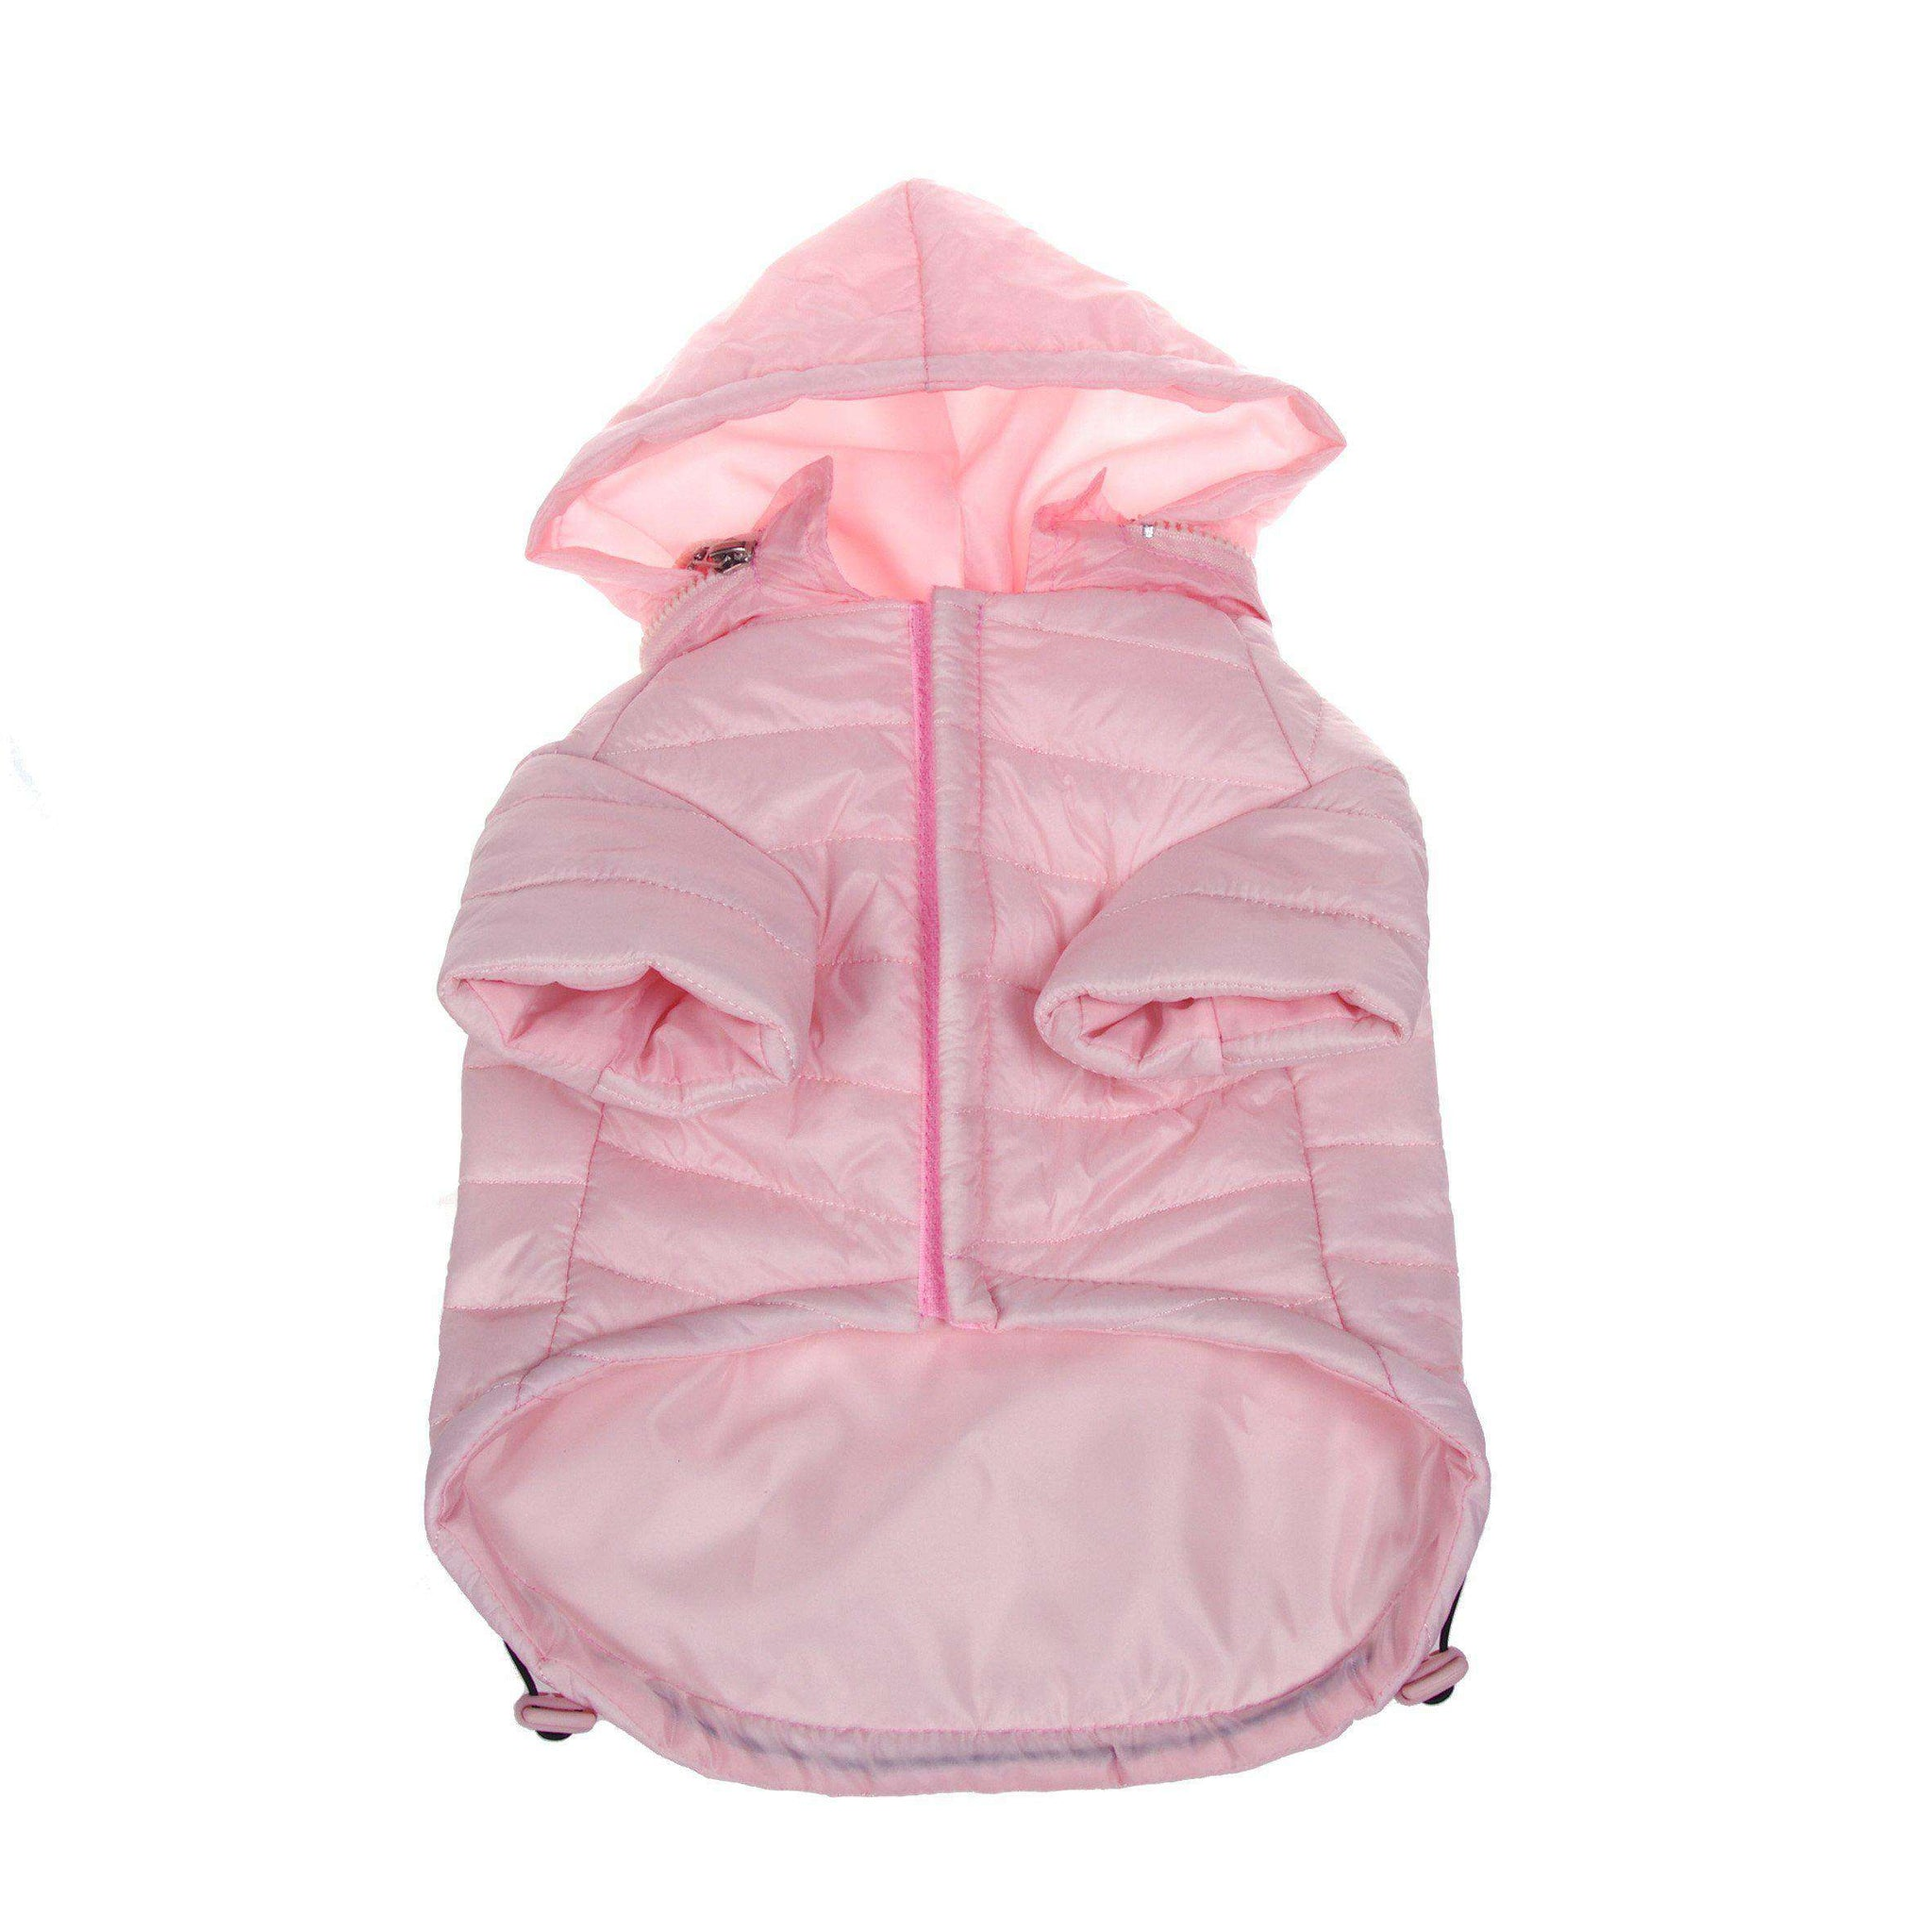 Lightweight Adjustable 'Sporty Avalanche' Pet Coat - Light Pink-Pet Life-DirtyFurClothing